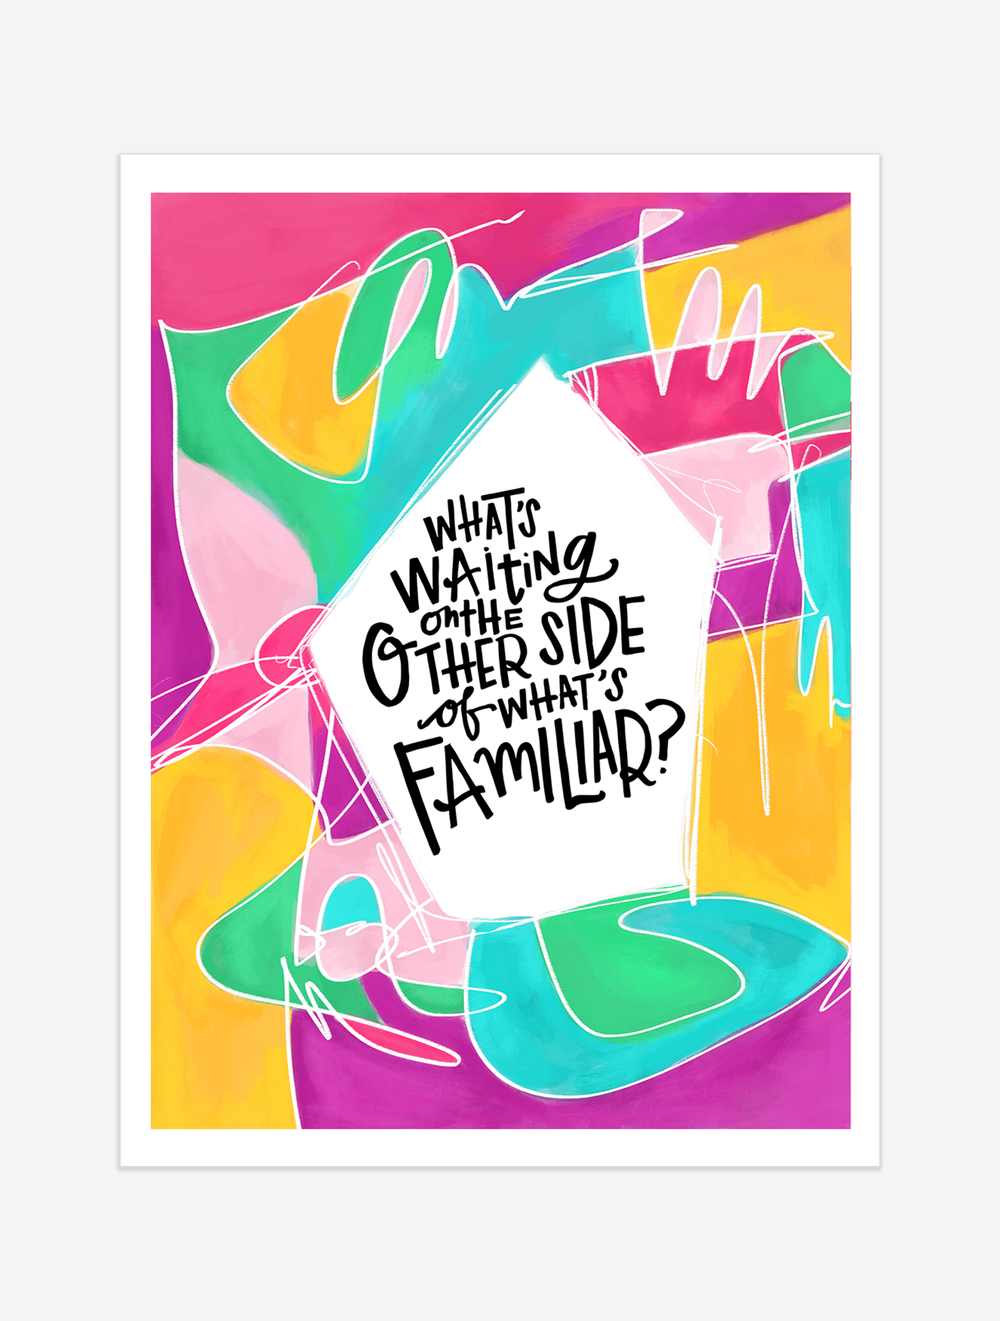 A reminder to go beyond what's familiar and discover what's possible! $25 giclee print available at the Made Vibrant Art Shop.